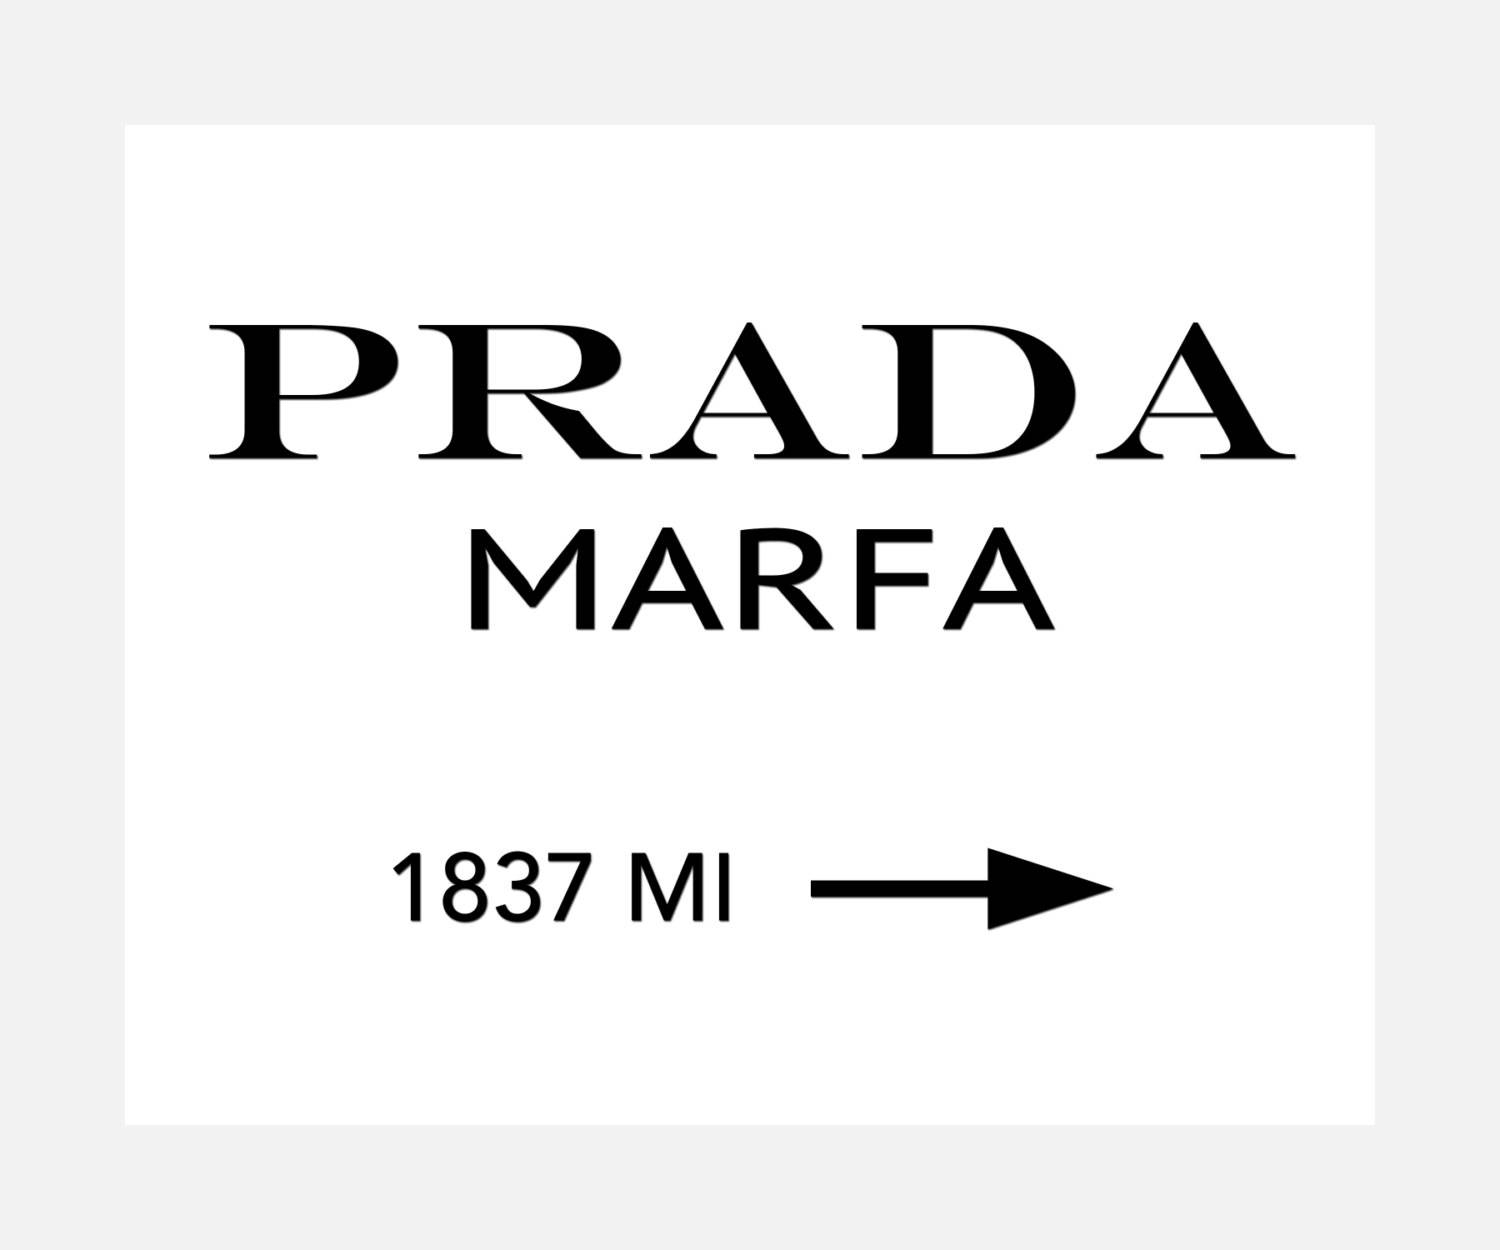 Prada Marfa Ready To Hang Canvas Wrap Or Luster Paper Intended For 2018 Prada Marfa Wall Art (View 17 of 25)